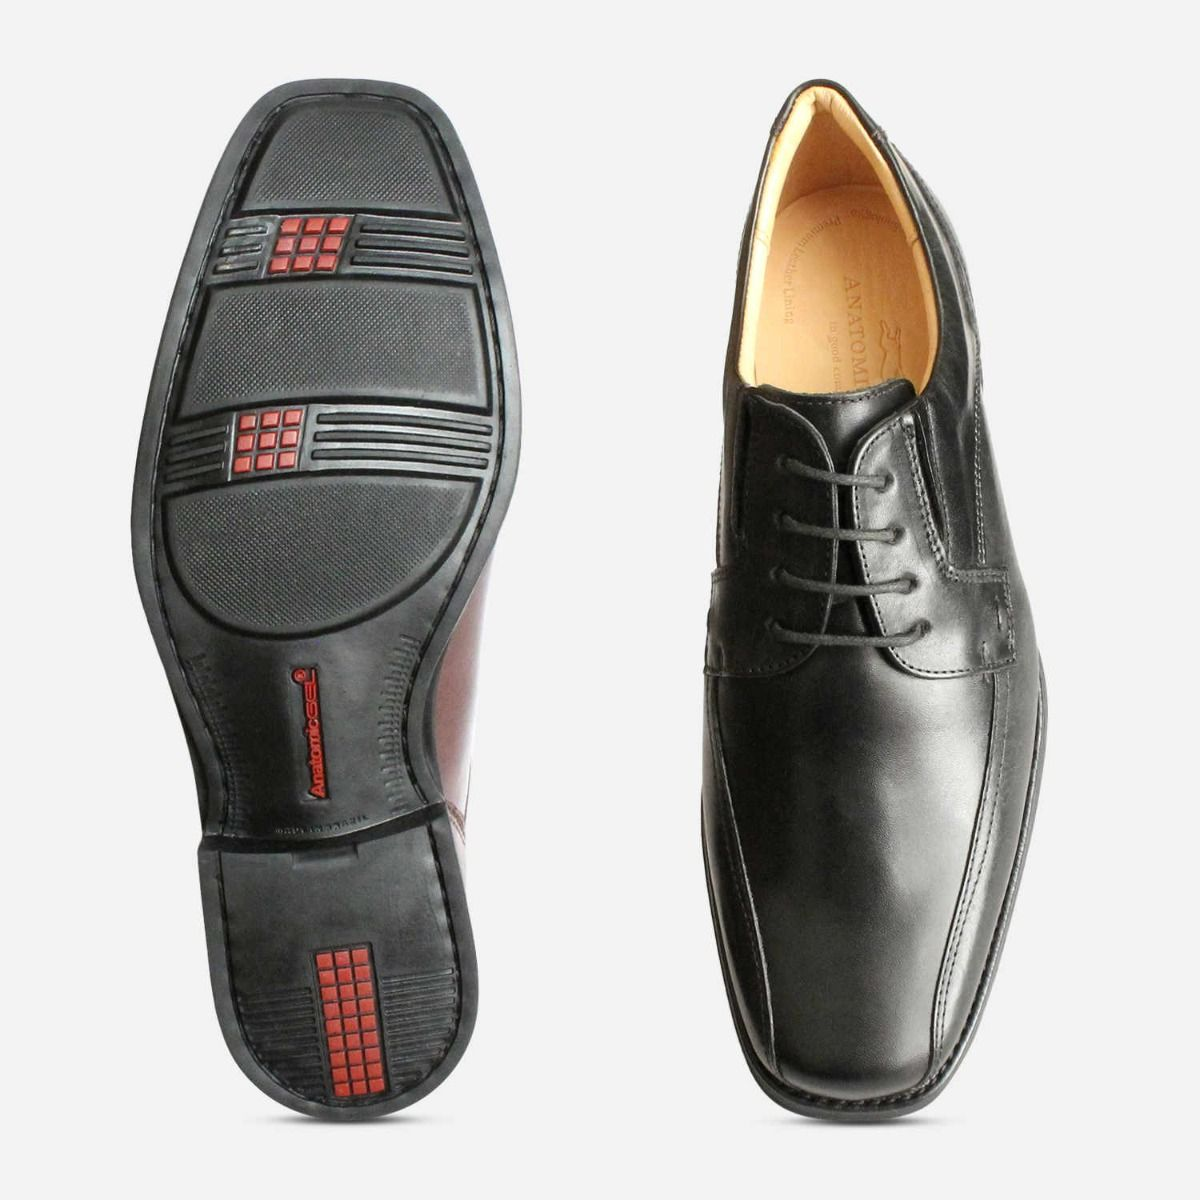 Formal Anatomic Formosa Lace Up Shoes in Black